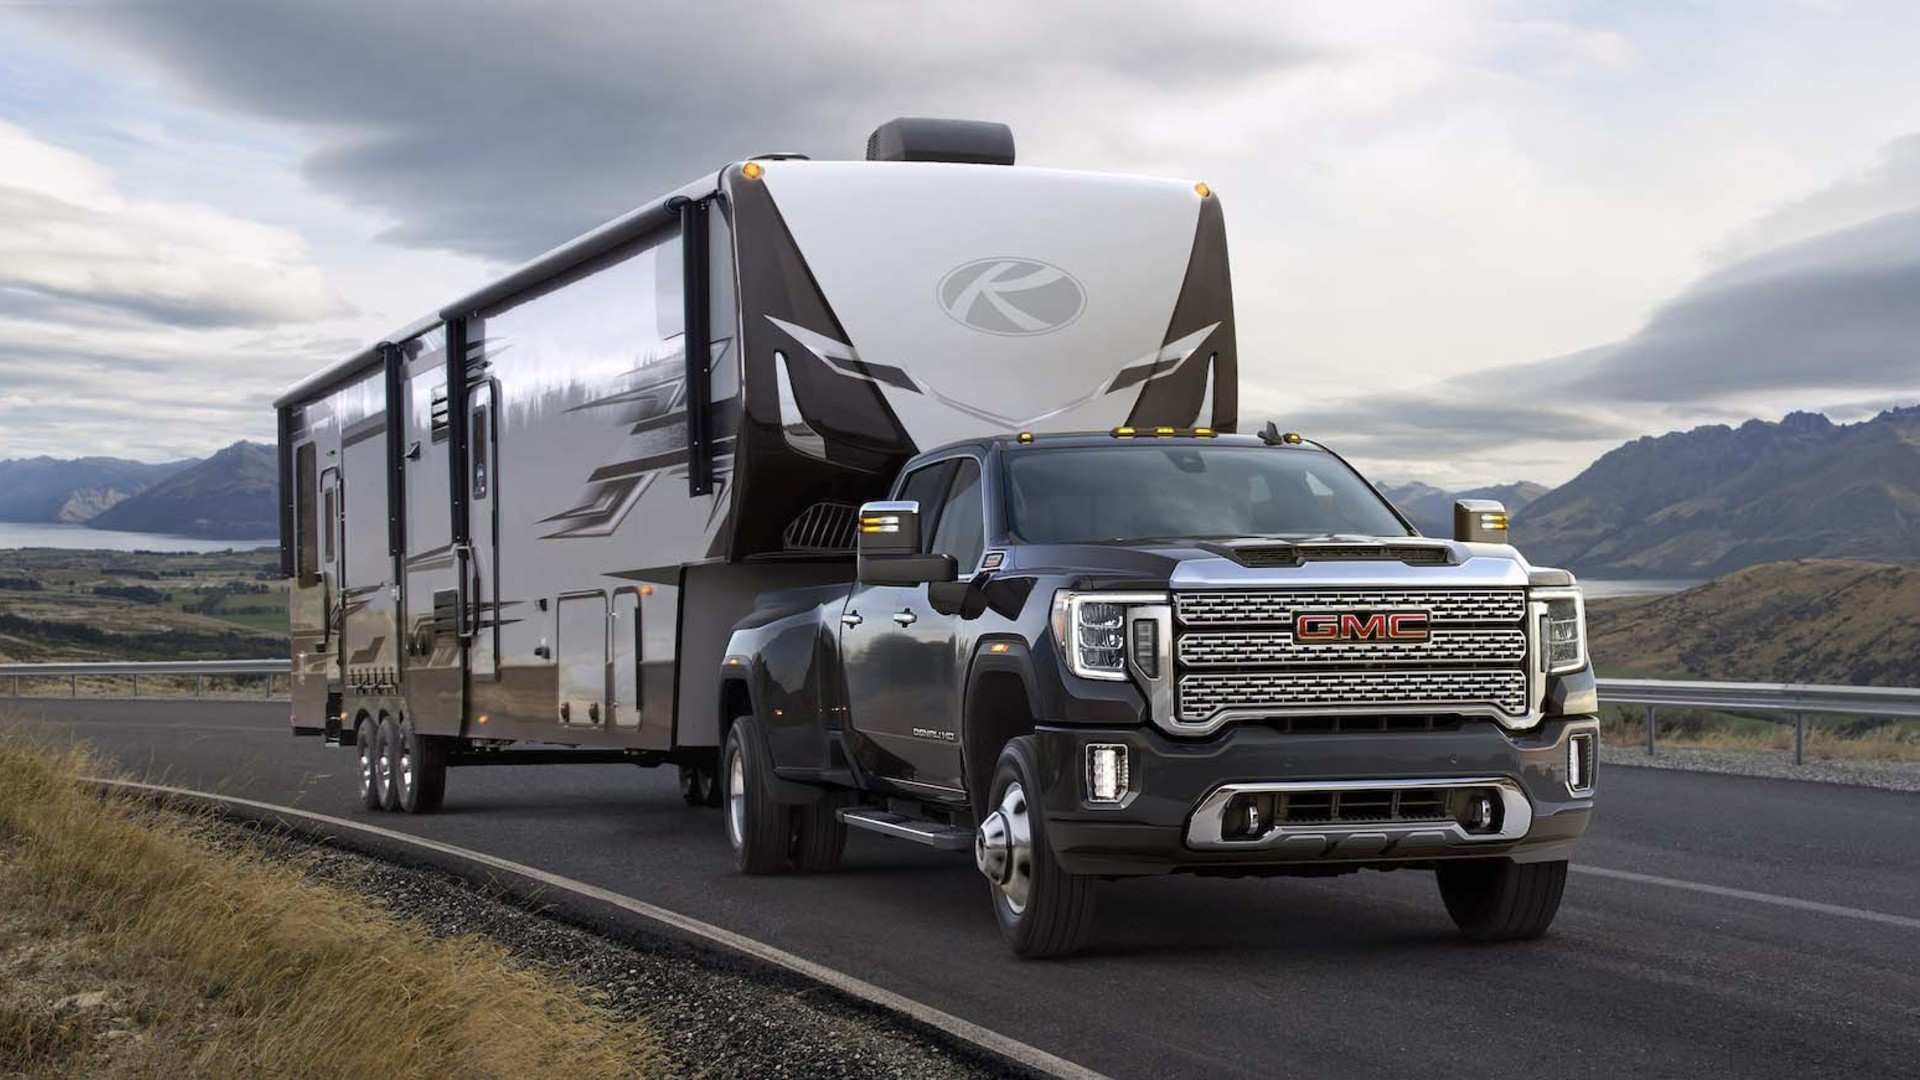 64 A 2020 GMC Lineup Photos